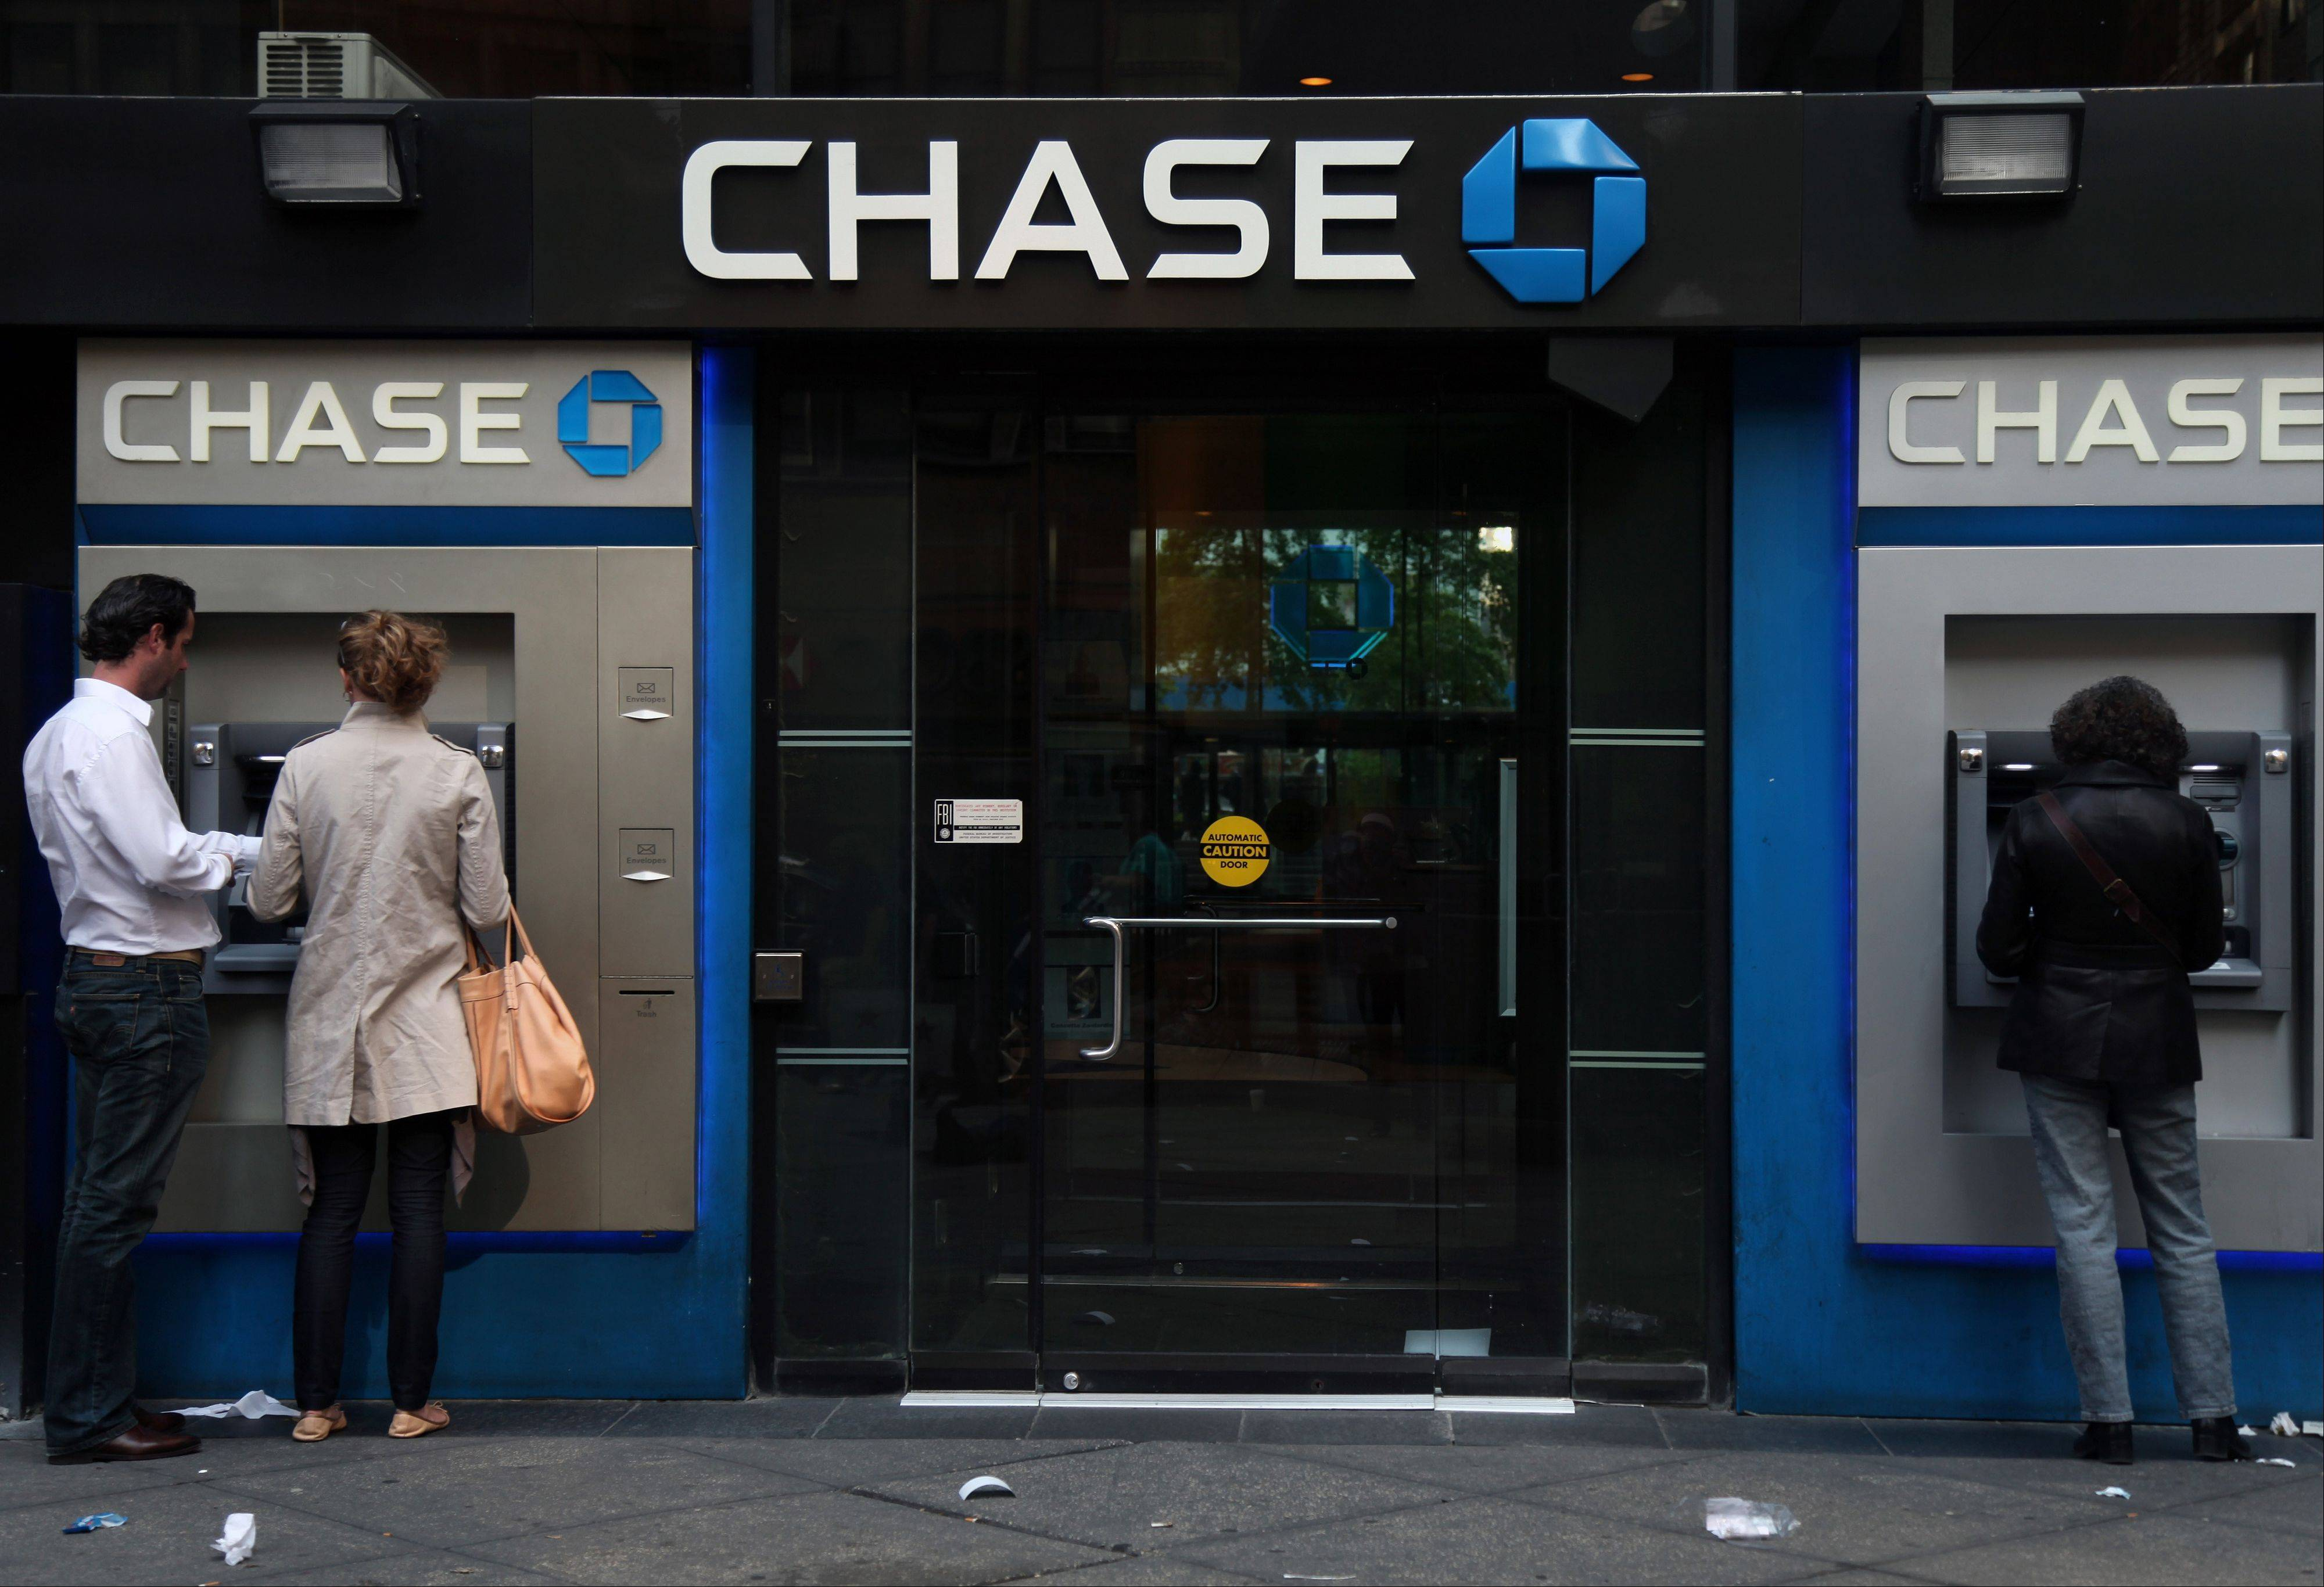 People use Chase ATM machines at a branch in New York. Americans stepped up their borrowing in May, helped by the largest one-month gain in credit card debt in more than four years. But overall credit card use is still well below where it was just before the Great Recession began.